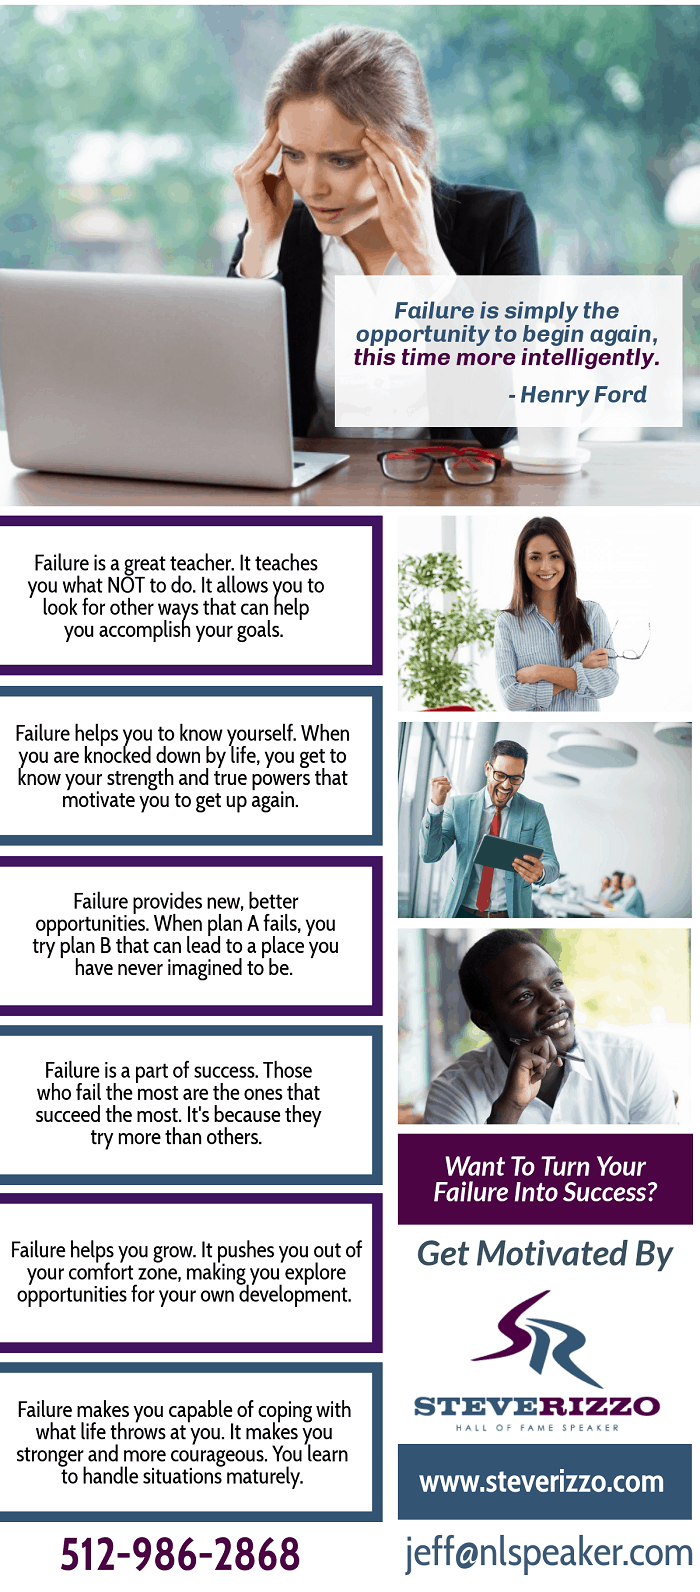 Failure is simply the opportunity to begin again - How Failure Takes You One Step Closer To Success